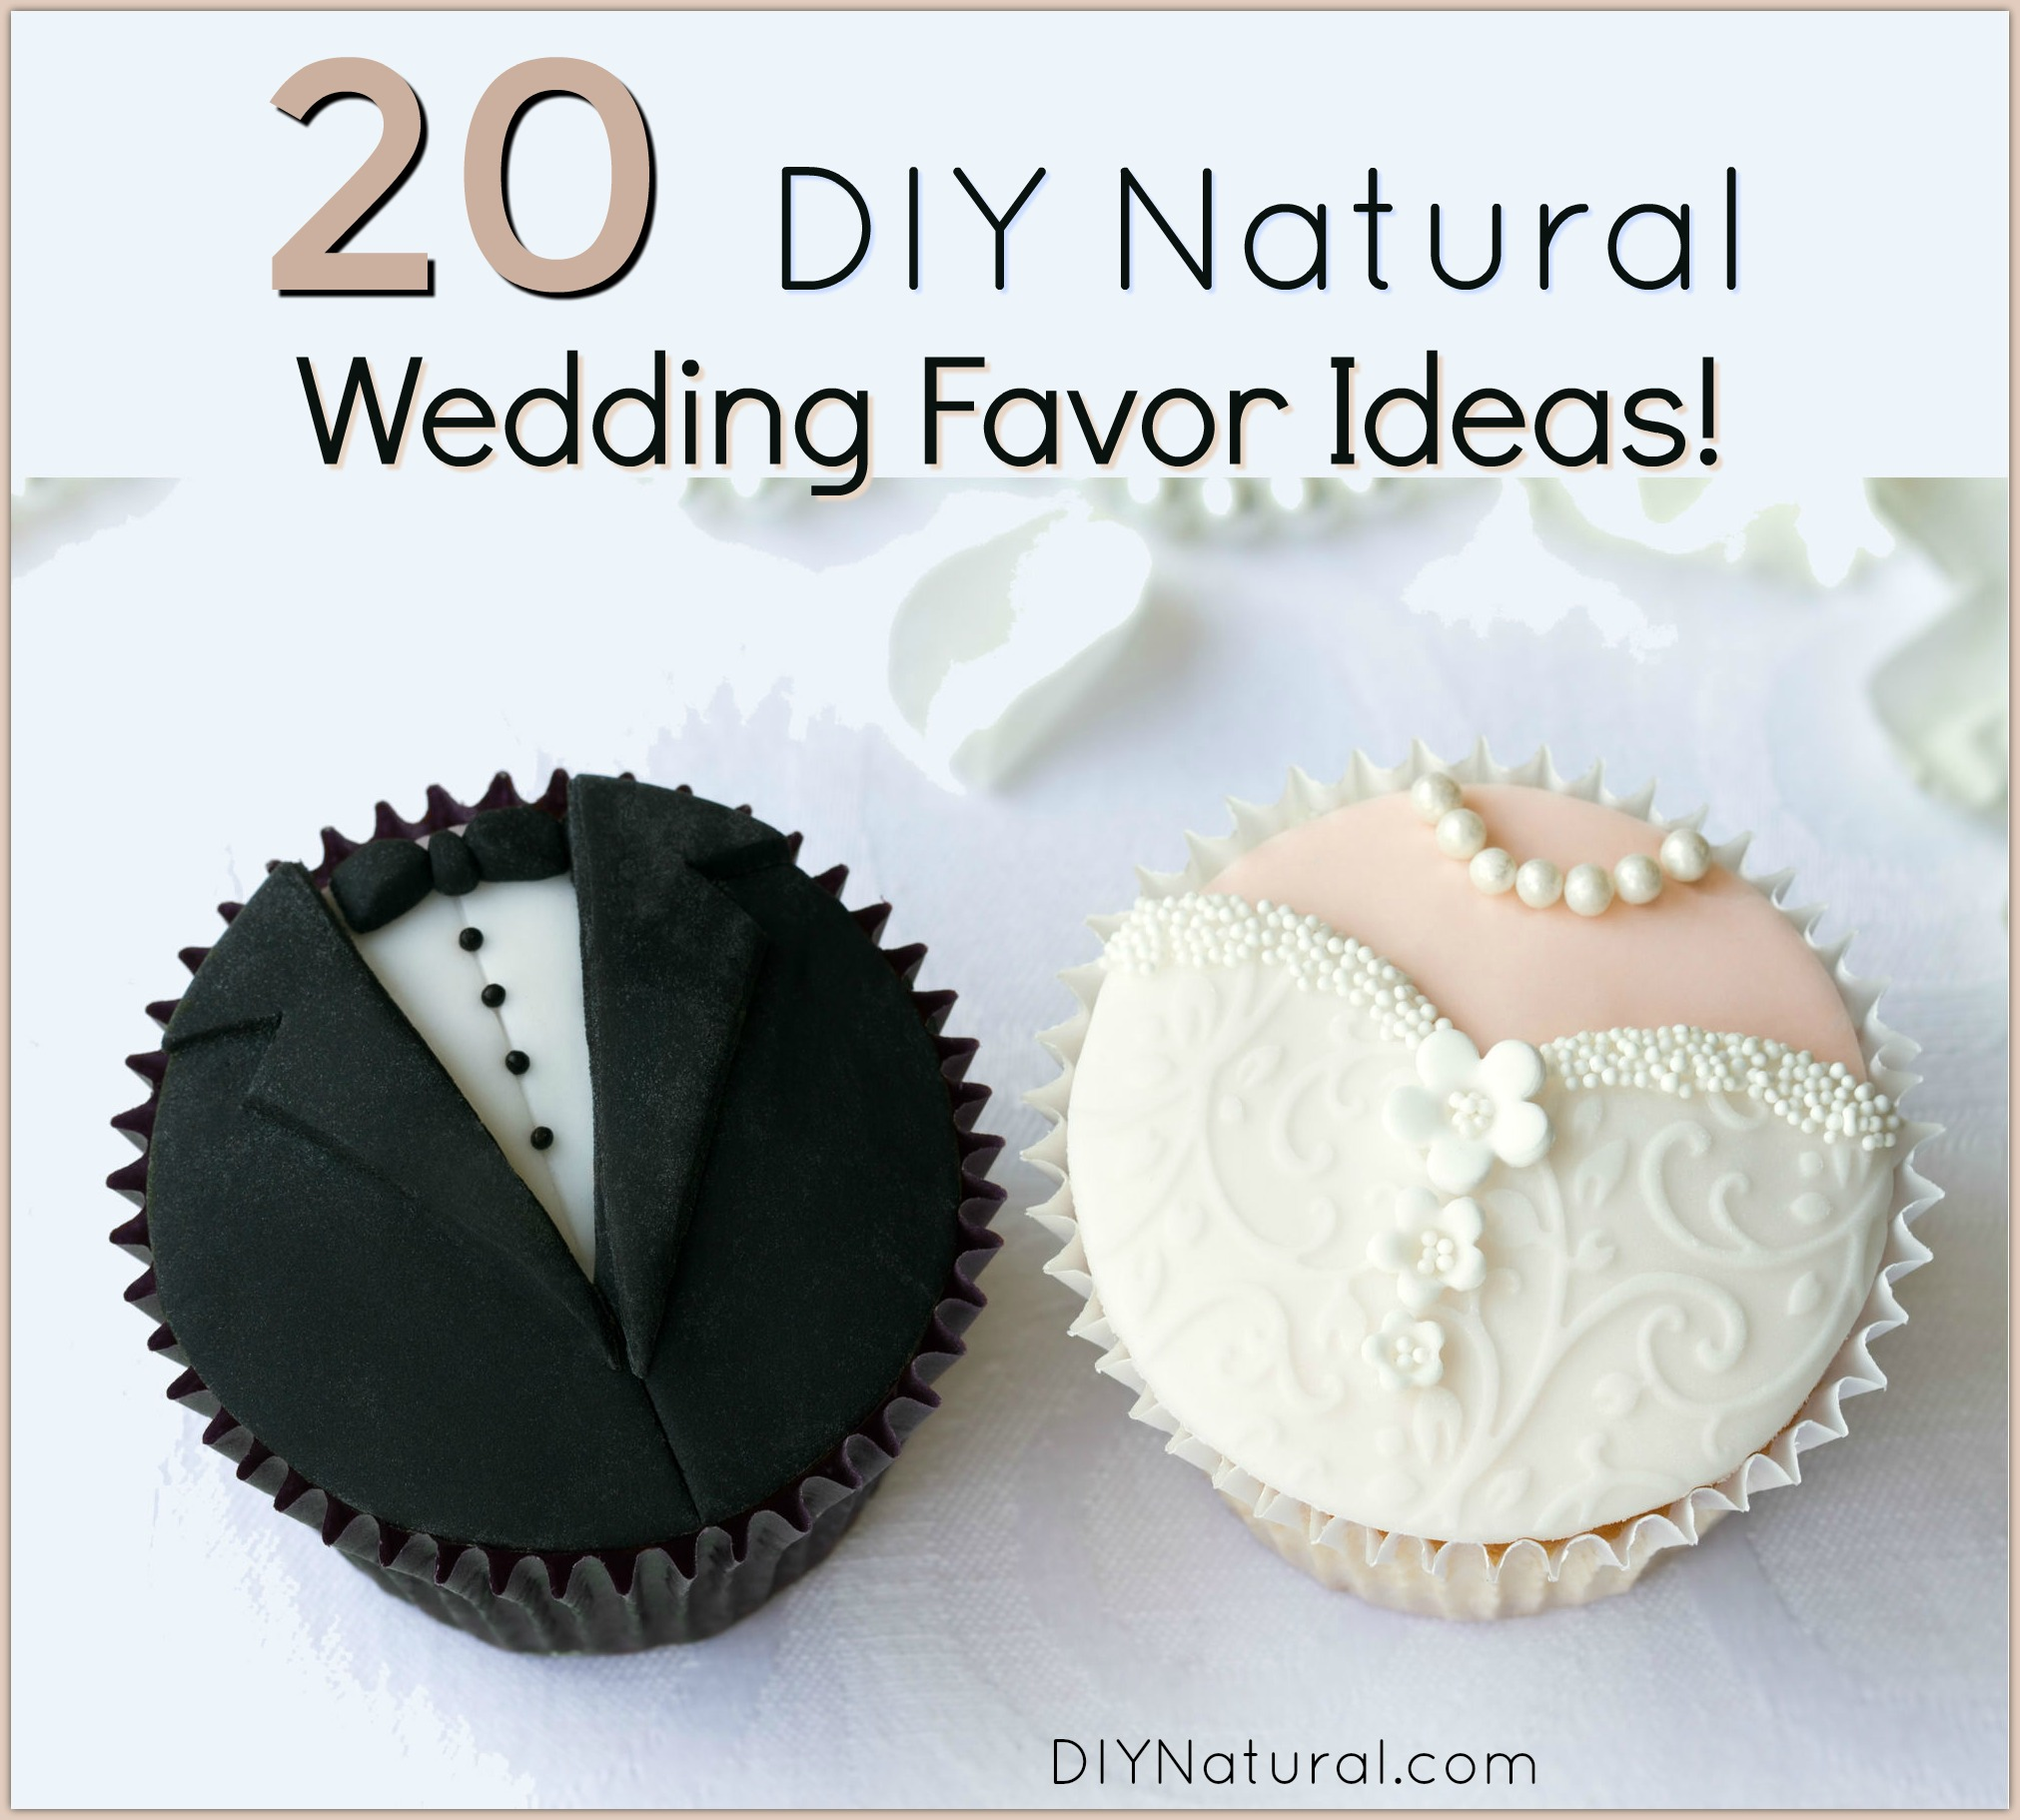 DIY Wedding Favors: 20 Ideas for Amazing Natural Wedding Favors